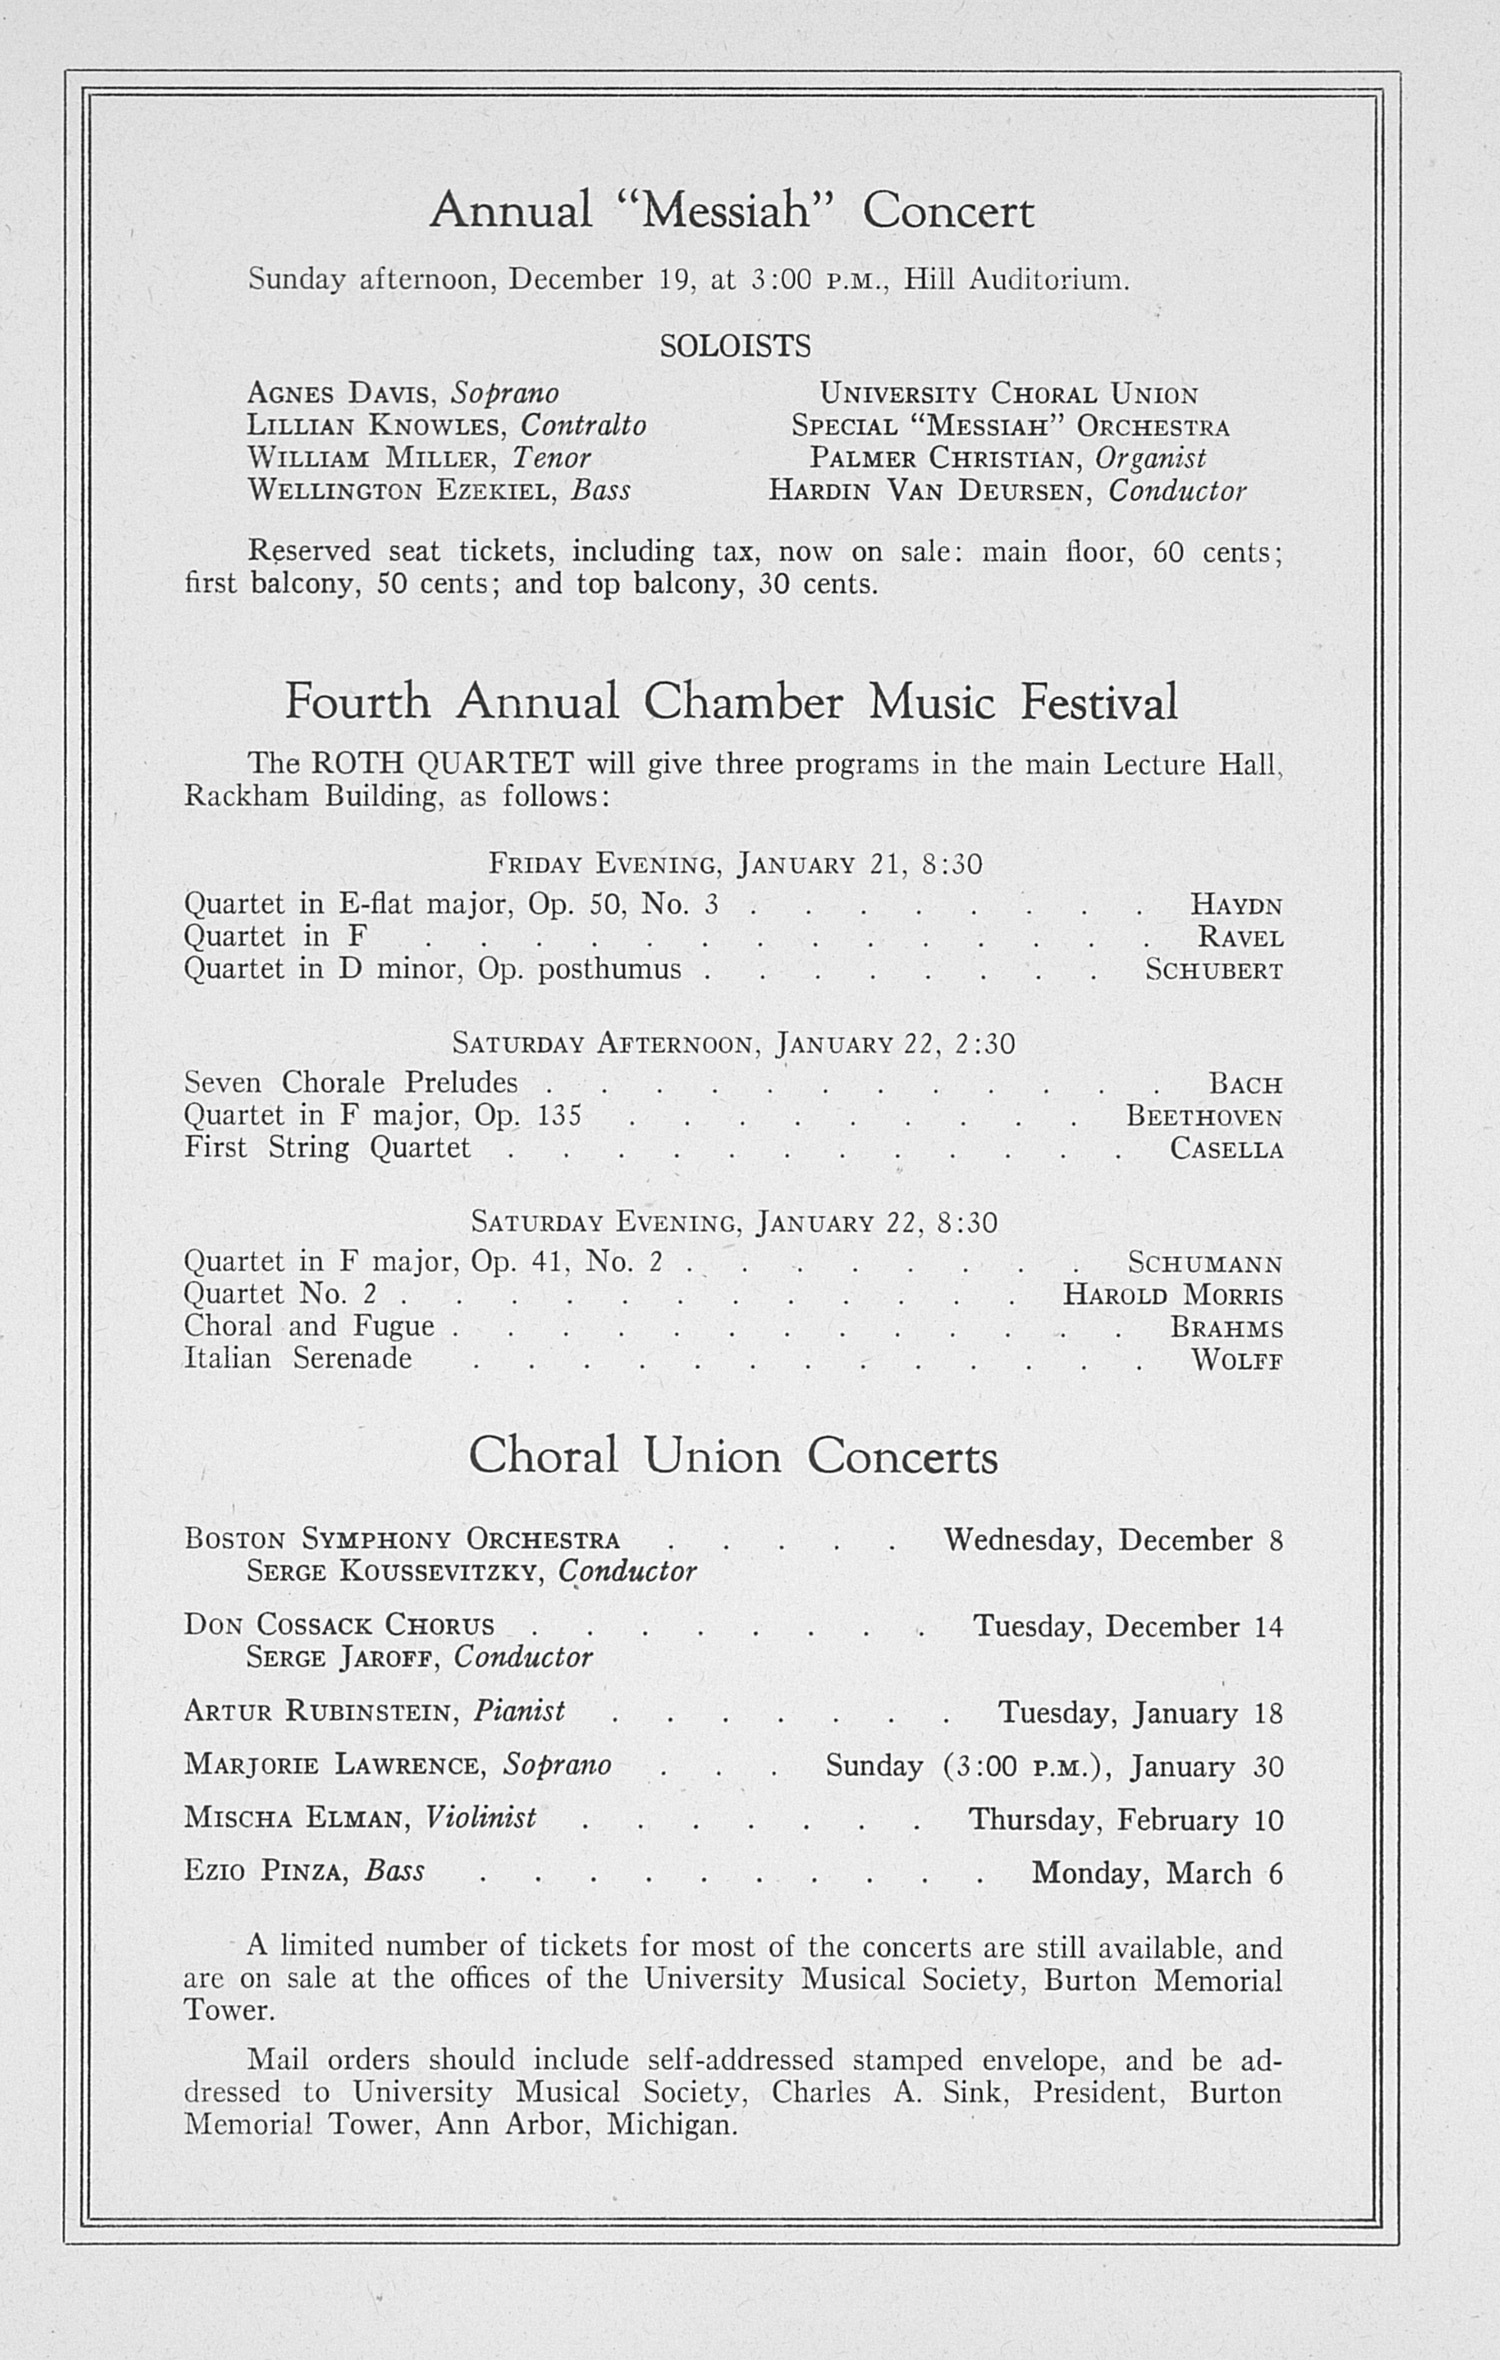 UMS Concert Program, December 3: Sixty-fifth Annual Choral Union Concert Series -- Claudio Arrau image